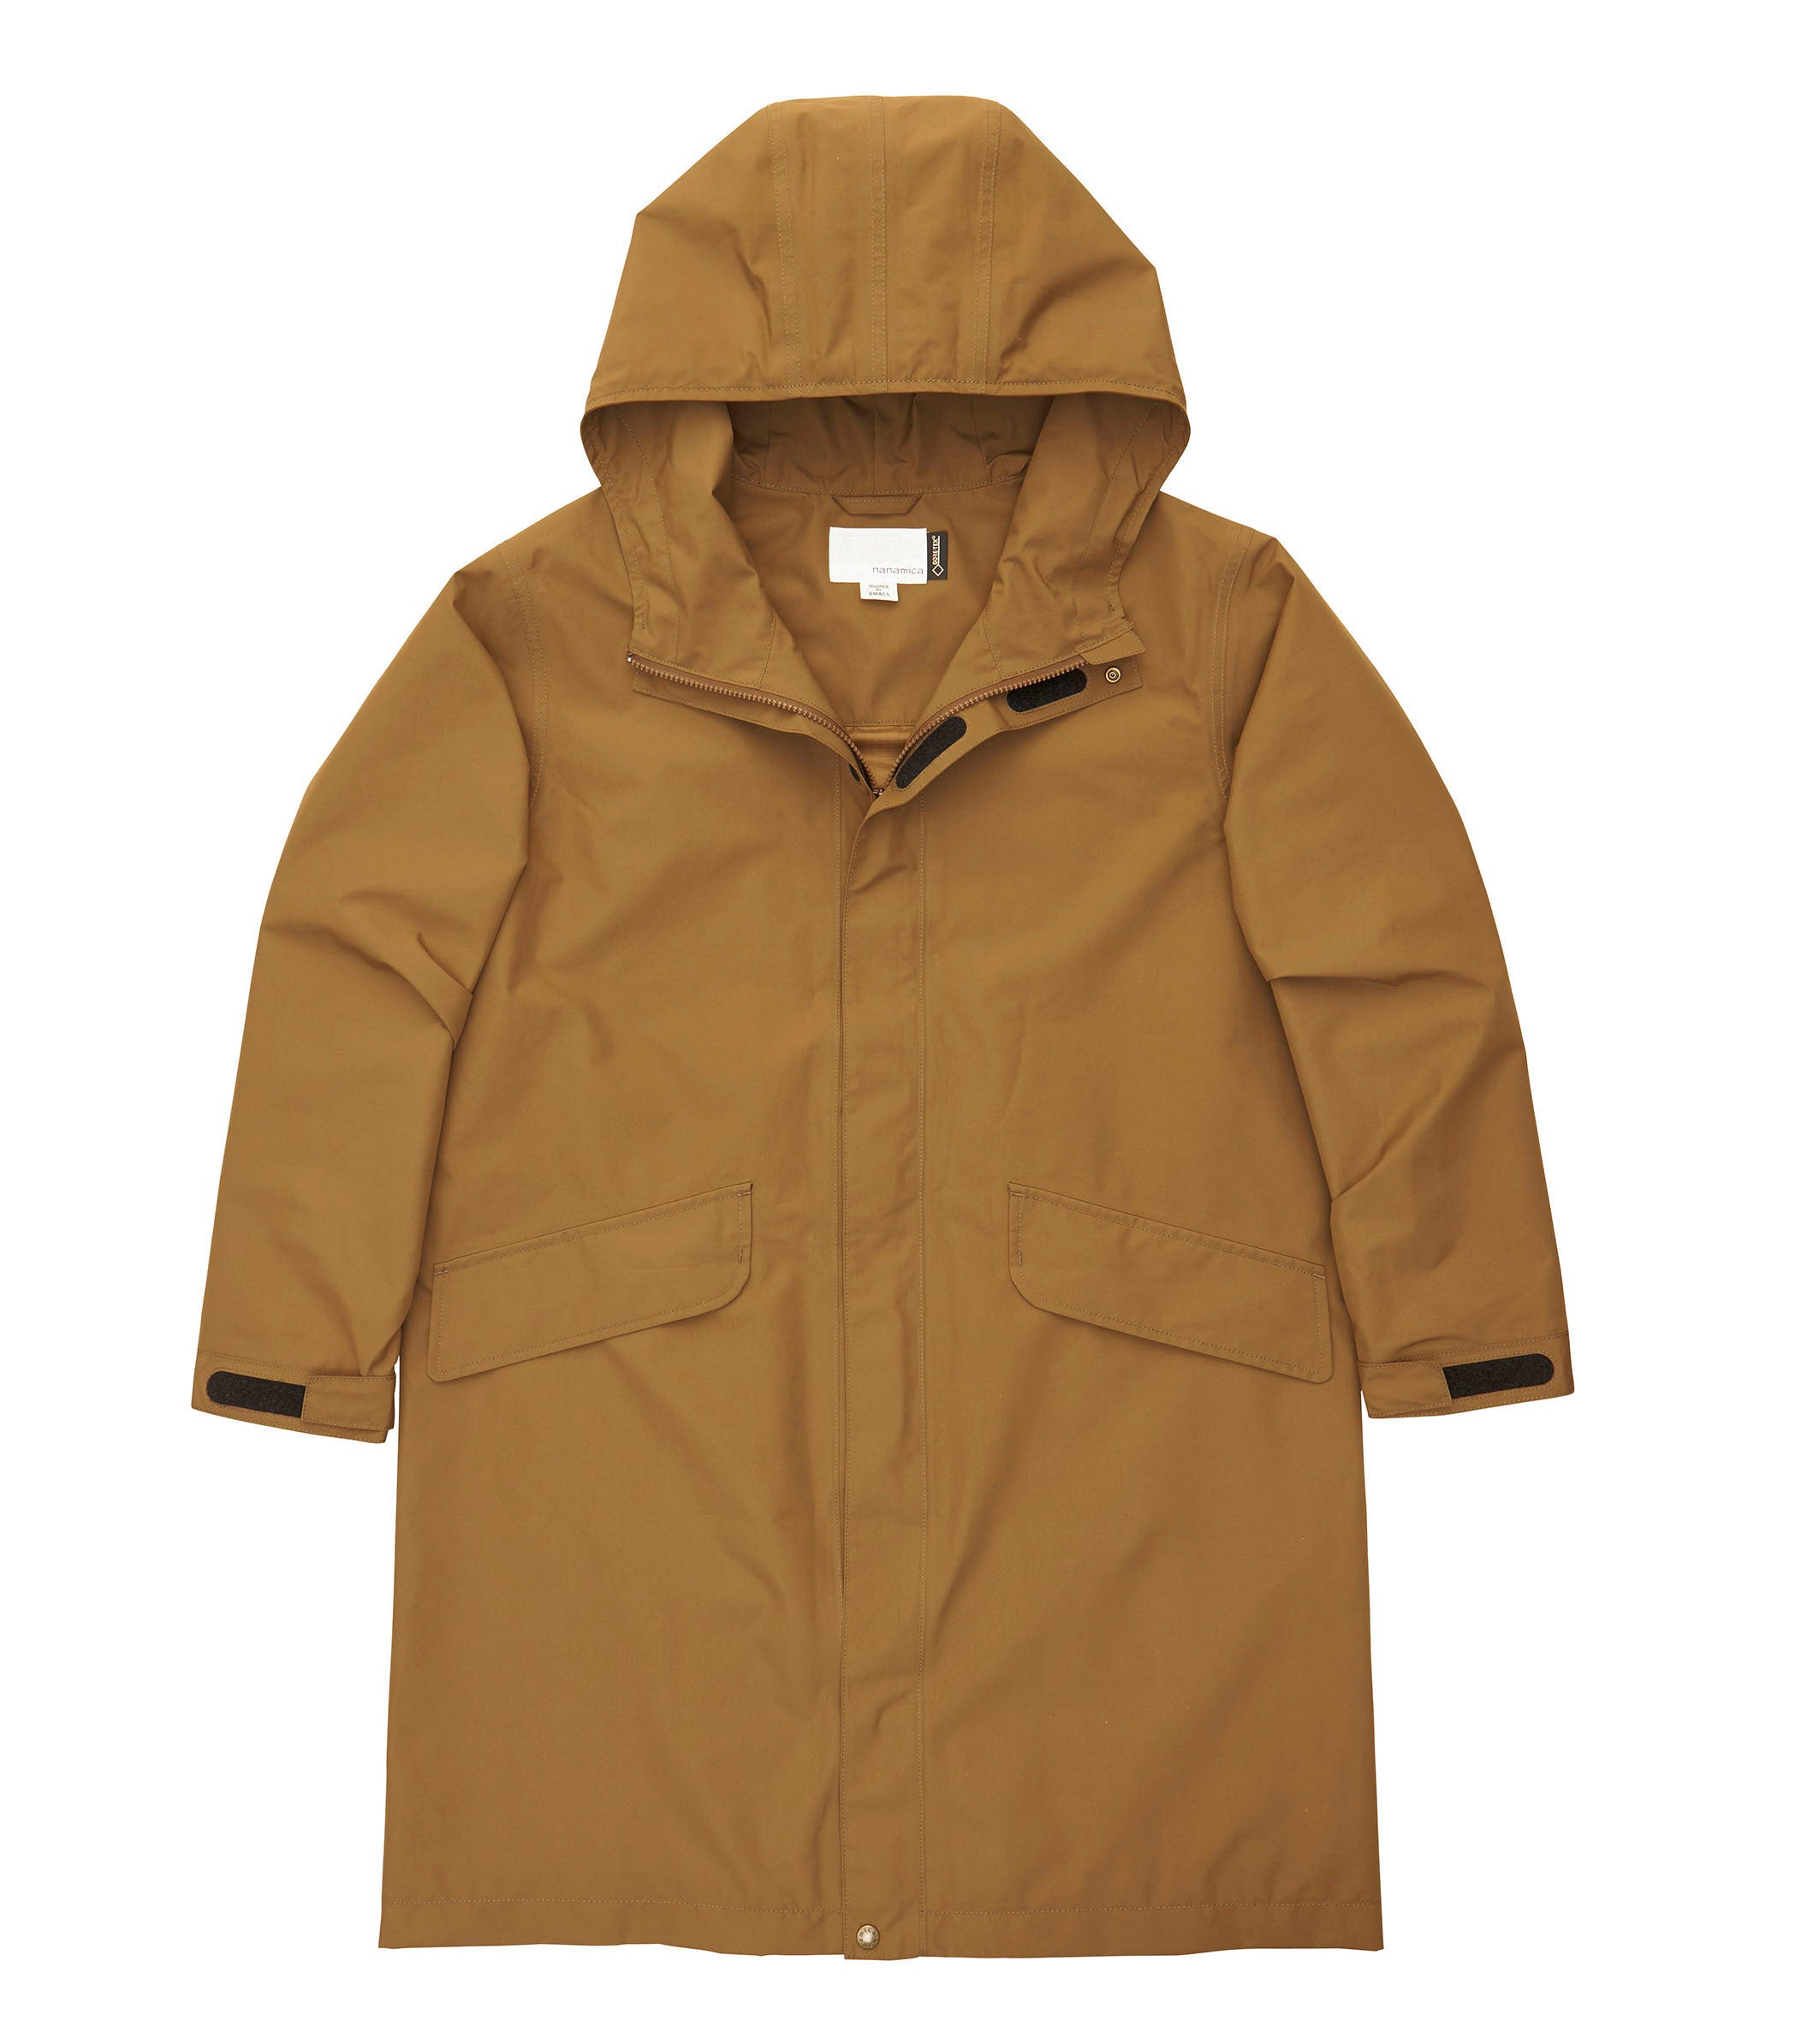 NANAMICA M'S OUTDOOR JKT TAUPE S GORE-TEX SHELL COAT